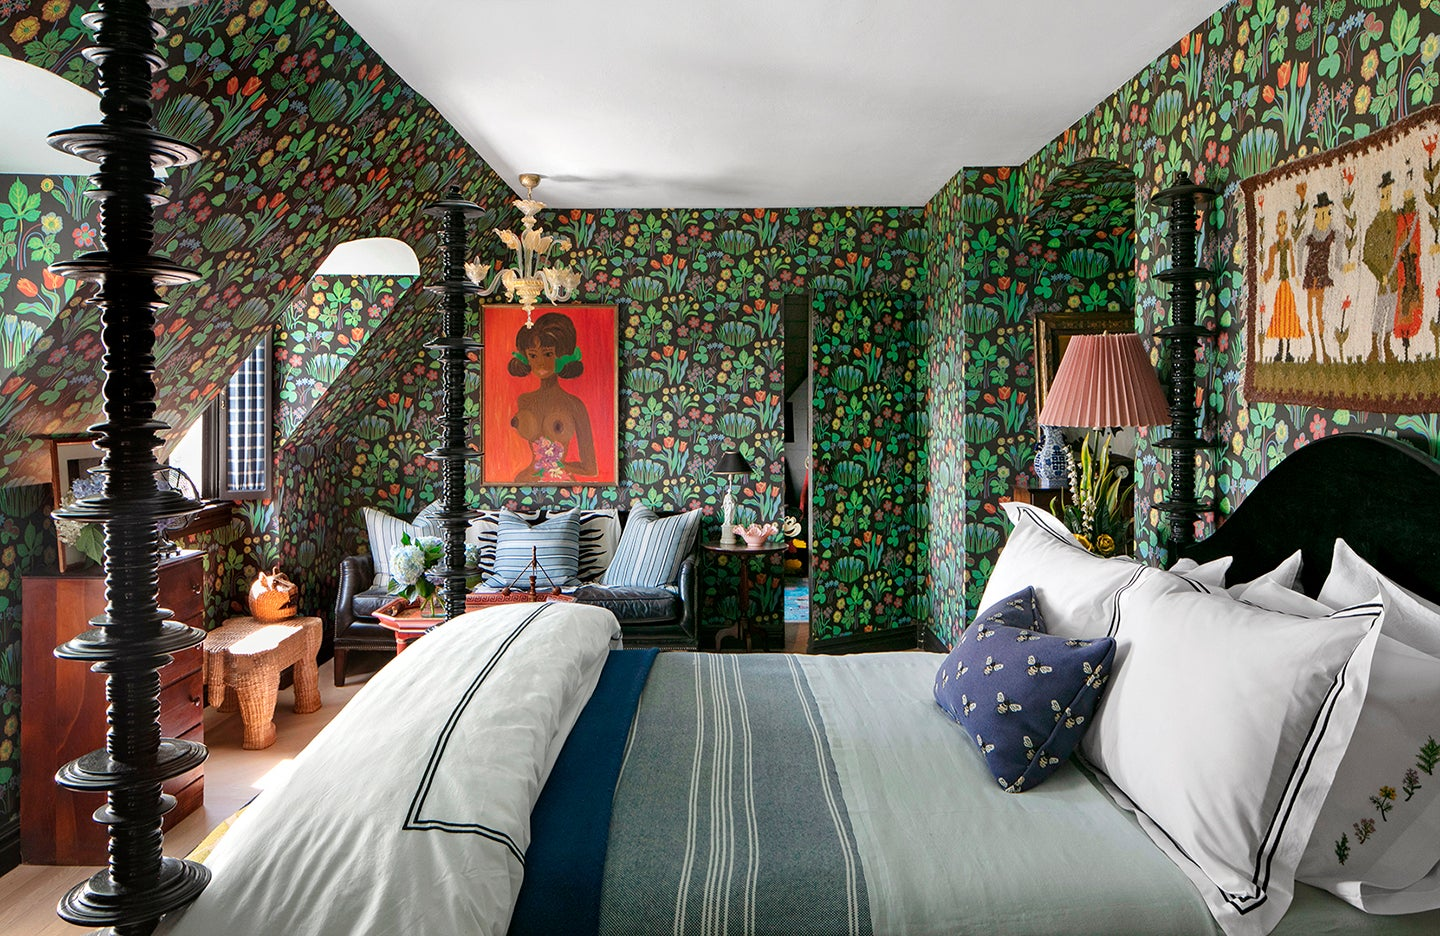 Bedroom with green floral wallpaper